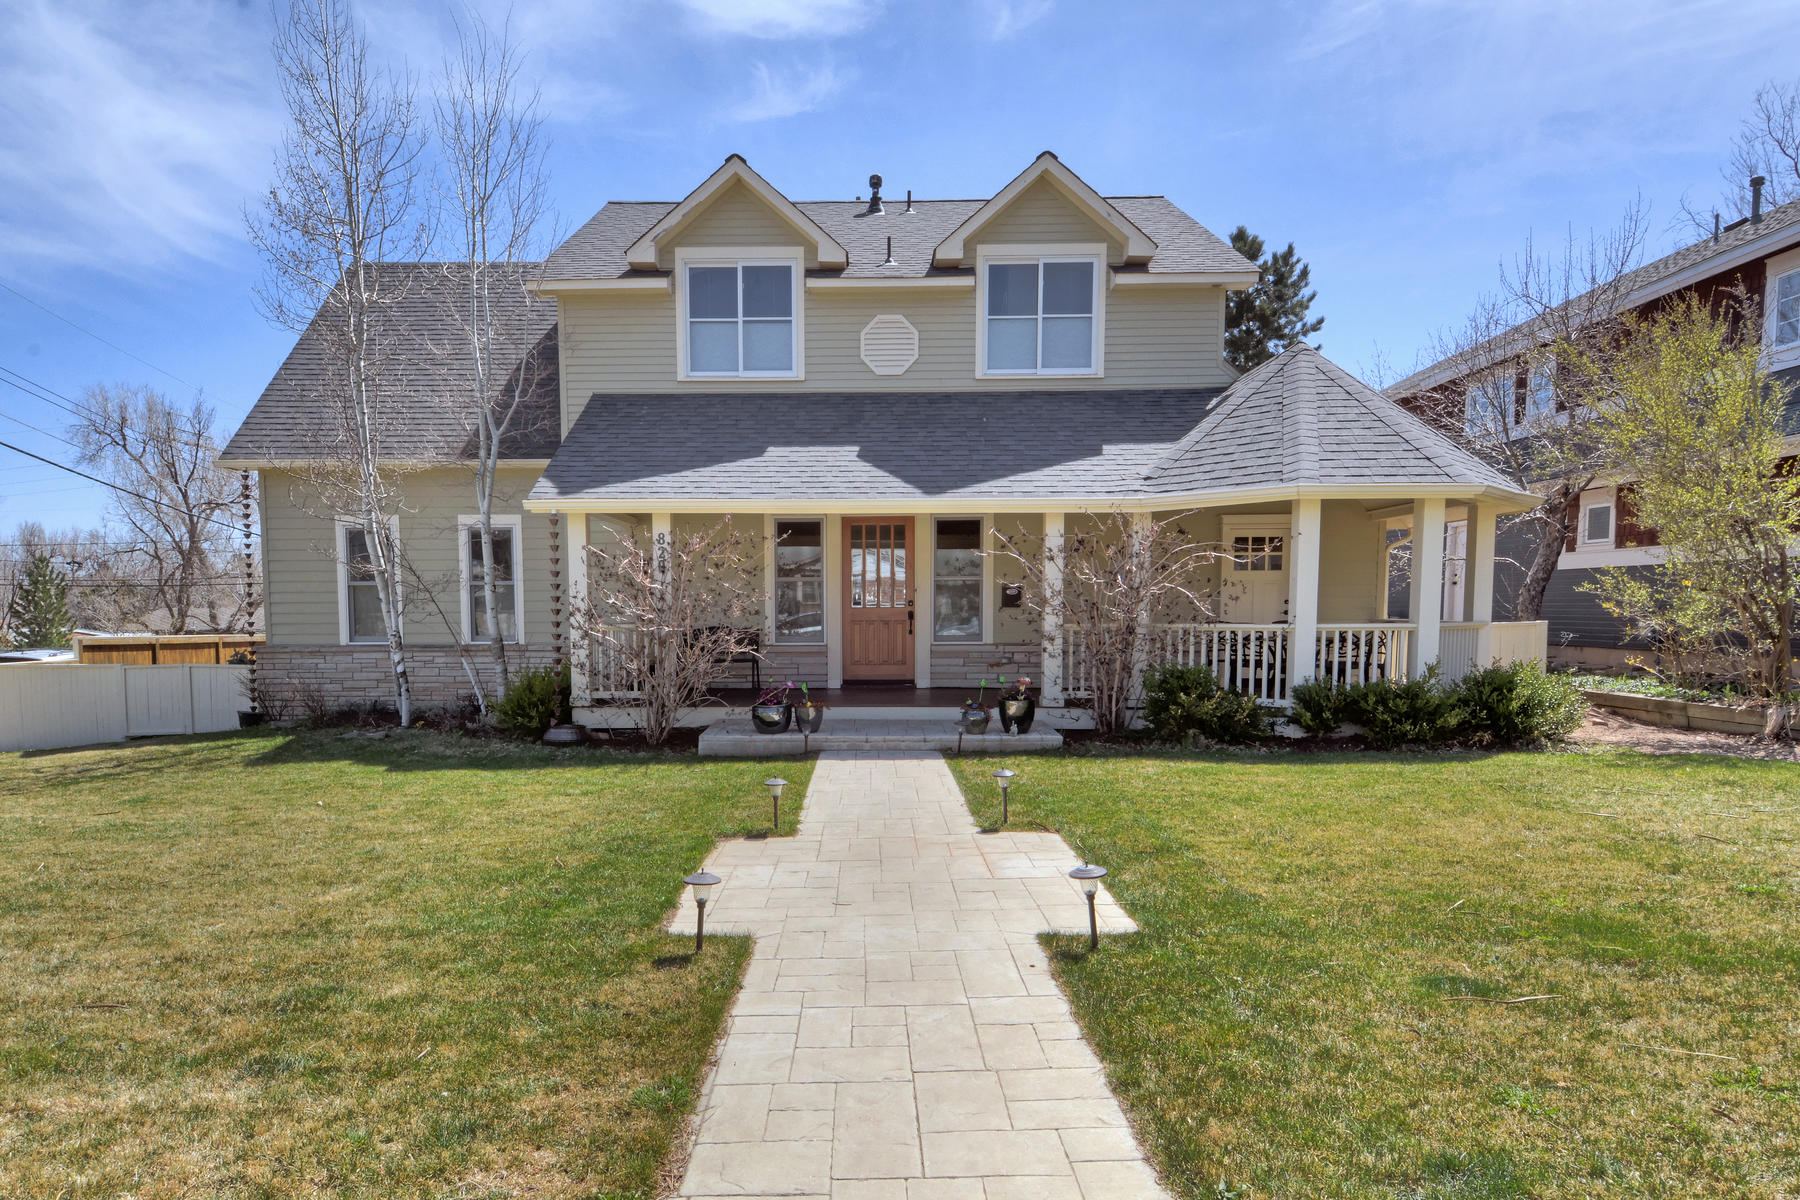 Single Family Home for Active at Newlands Renovated Farmhouse 820 Hawthorn Avenue Boulder, Colorado 80304 United States